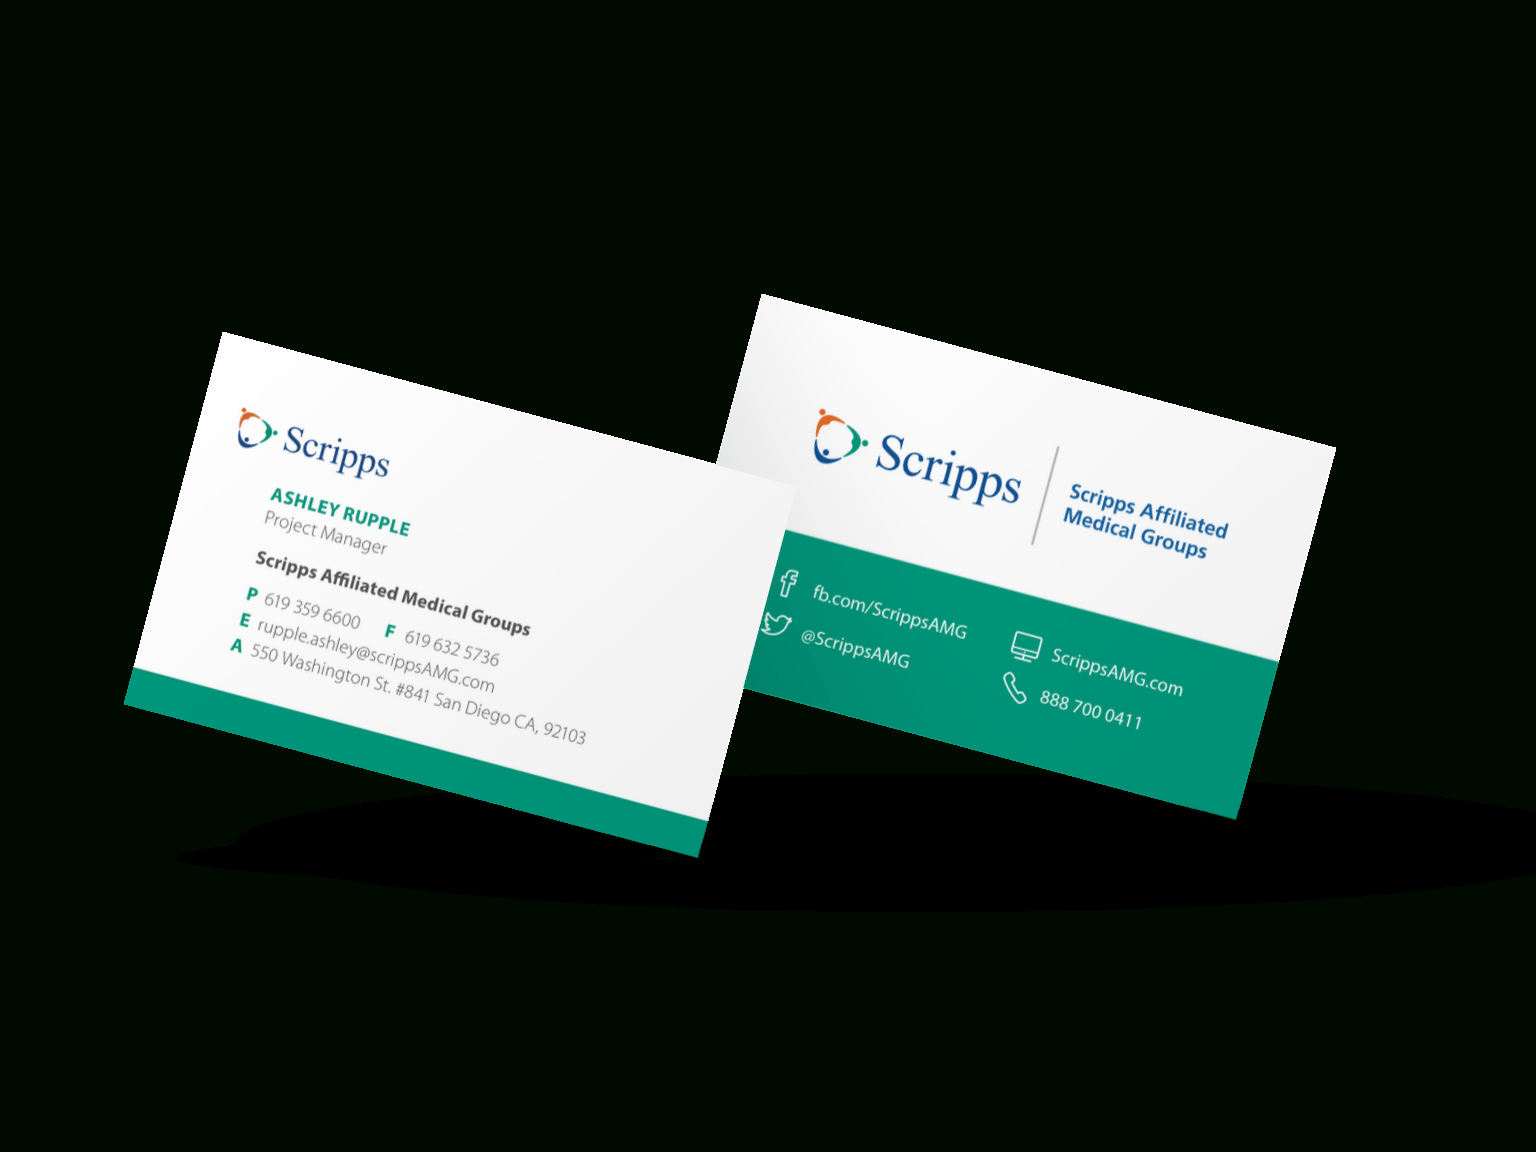 Medical Business Cards Templates Free - Zohre In Medical Business Cards Templates Free